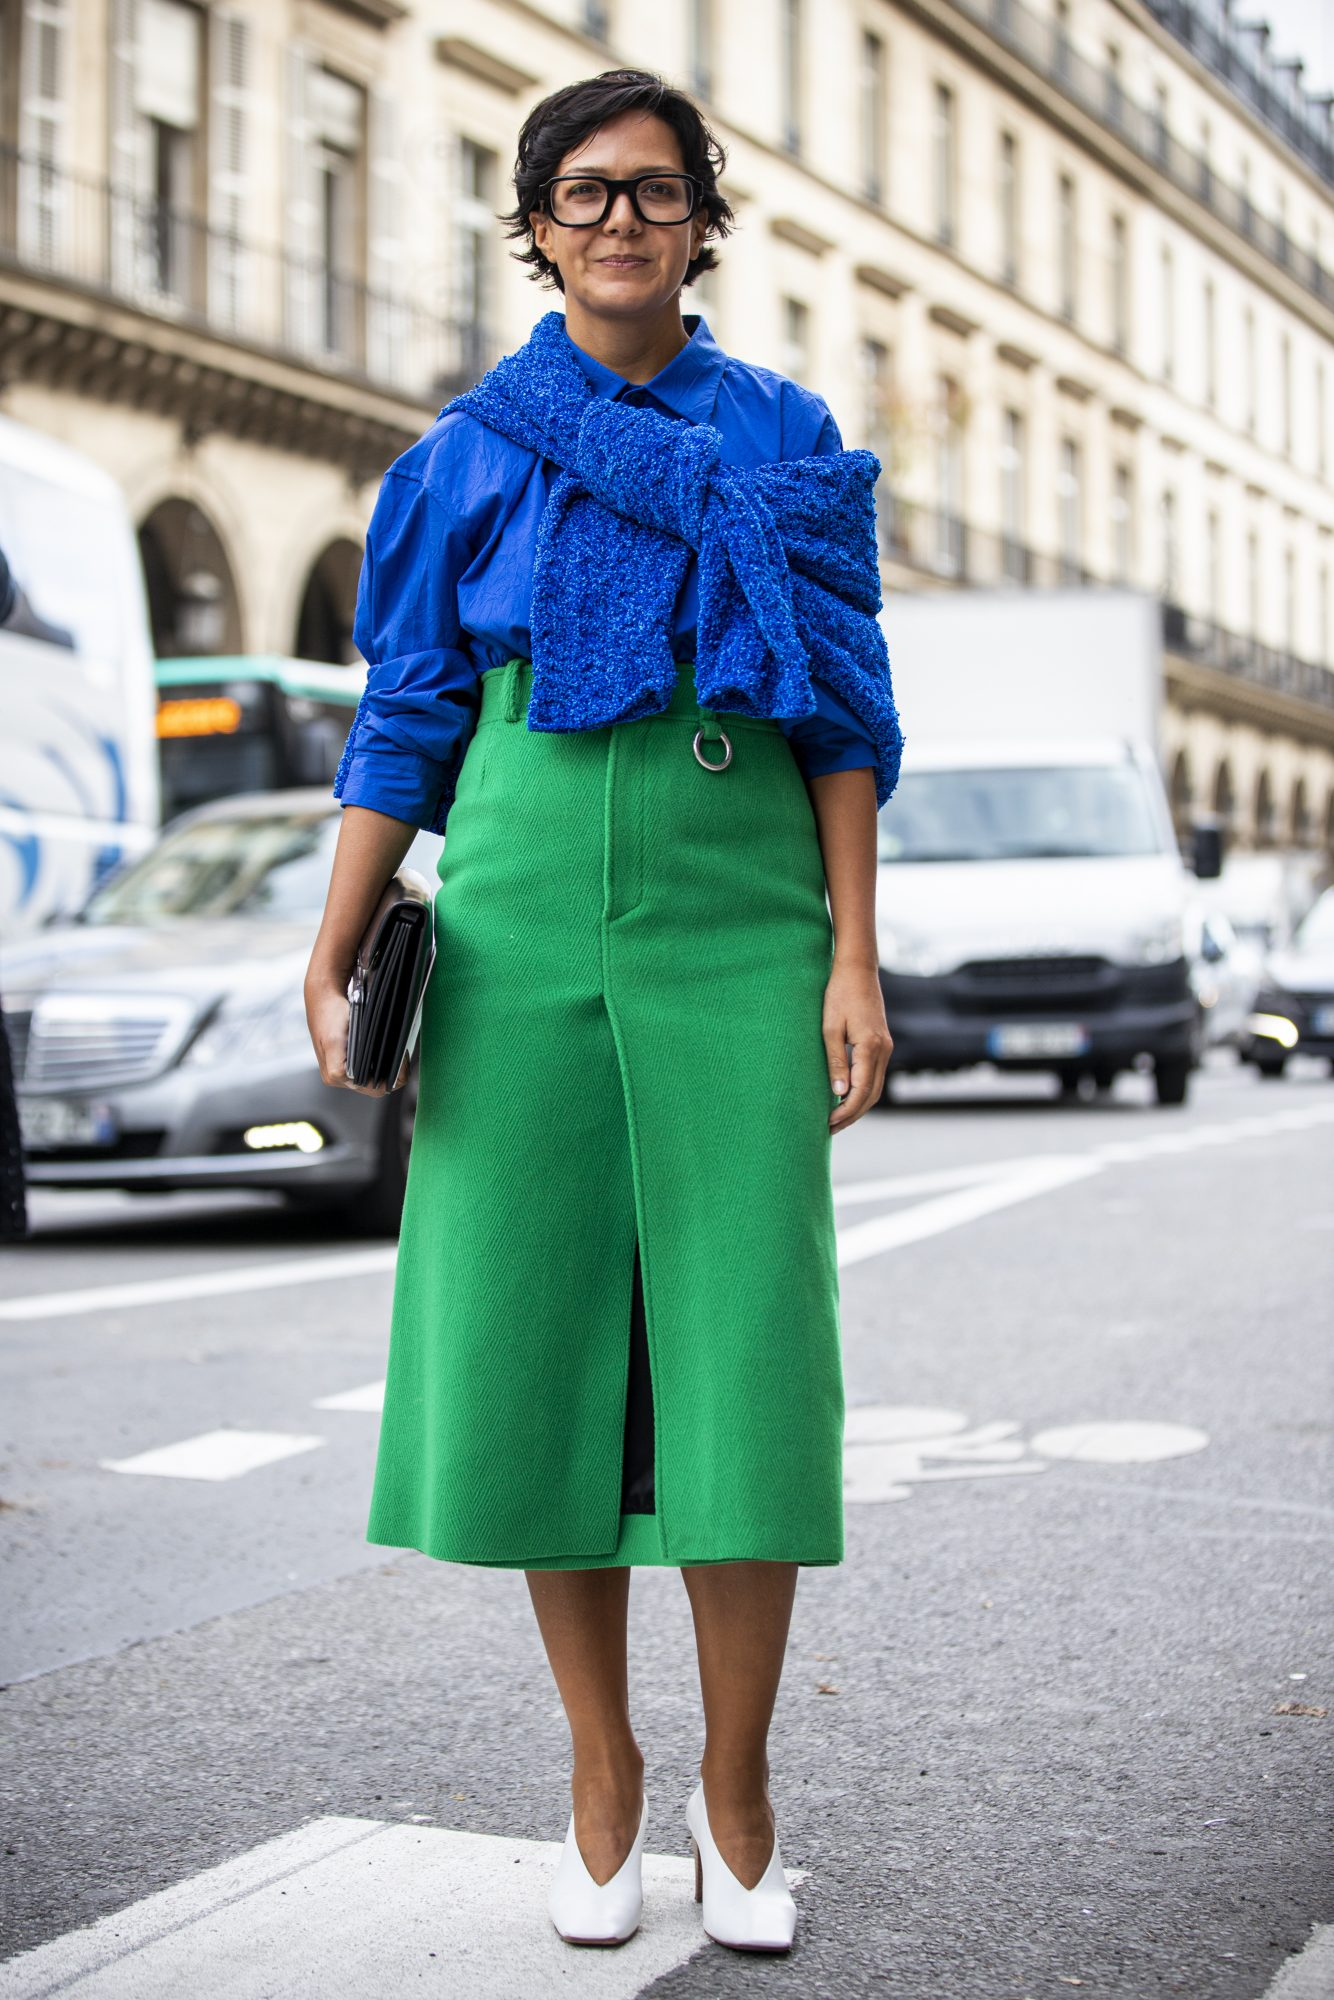 Colorblocked outfit street style